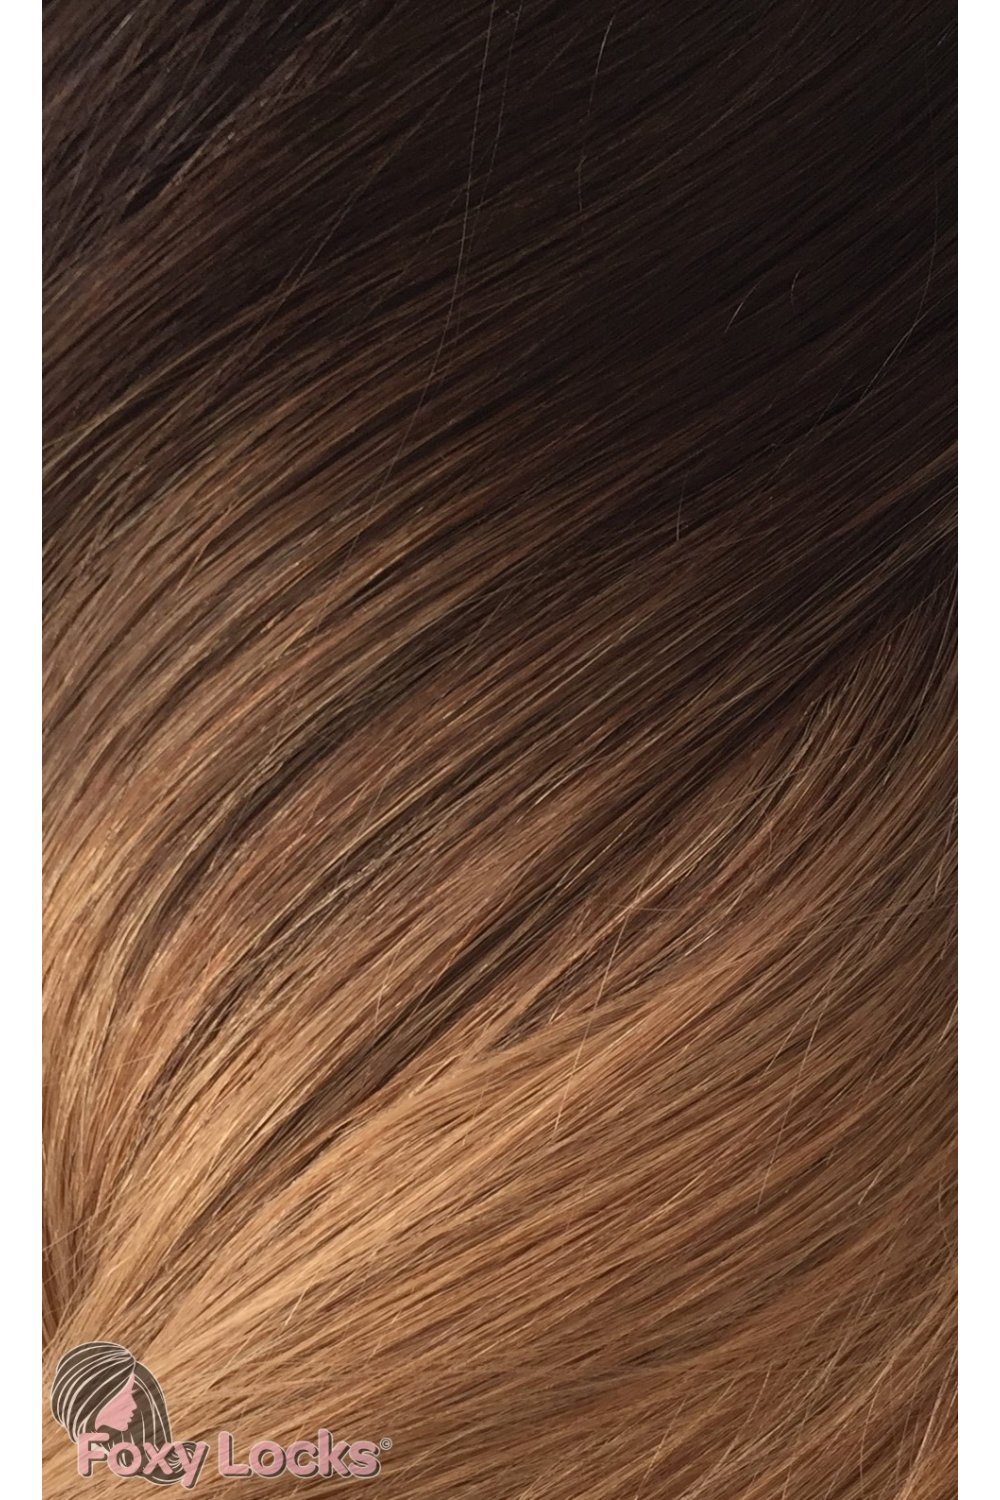 Toffee ombre deluxe 20 clip in human hair extensions 165g mocha toffee ombre deluxe 20 clip in human hair extensions 165g pmusecretfo Choice Image